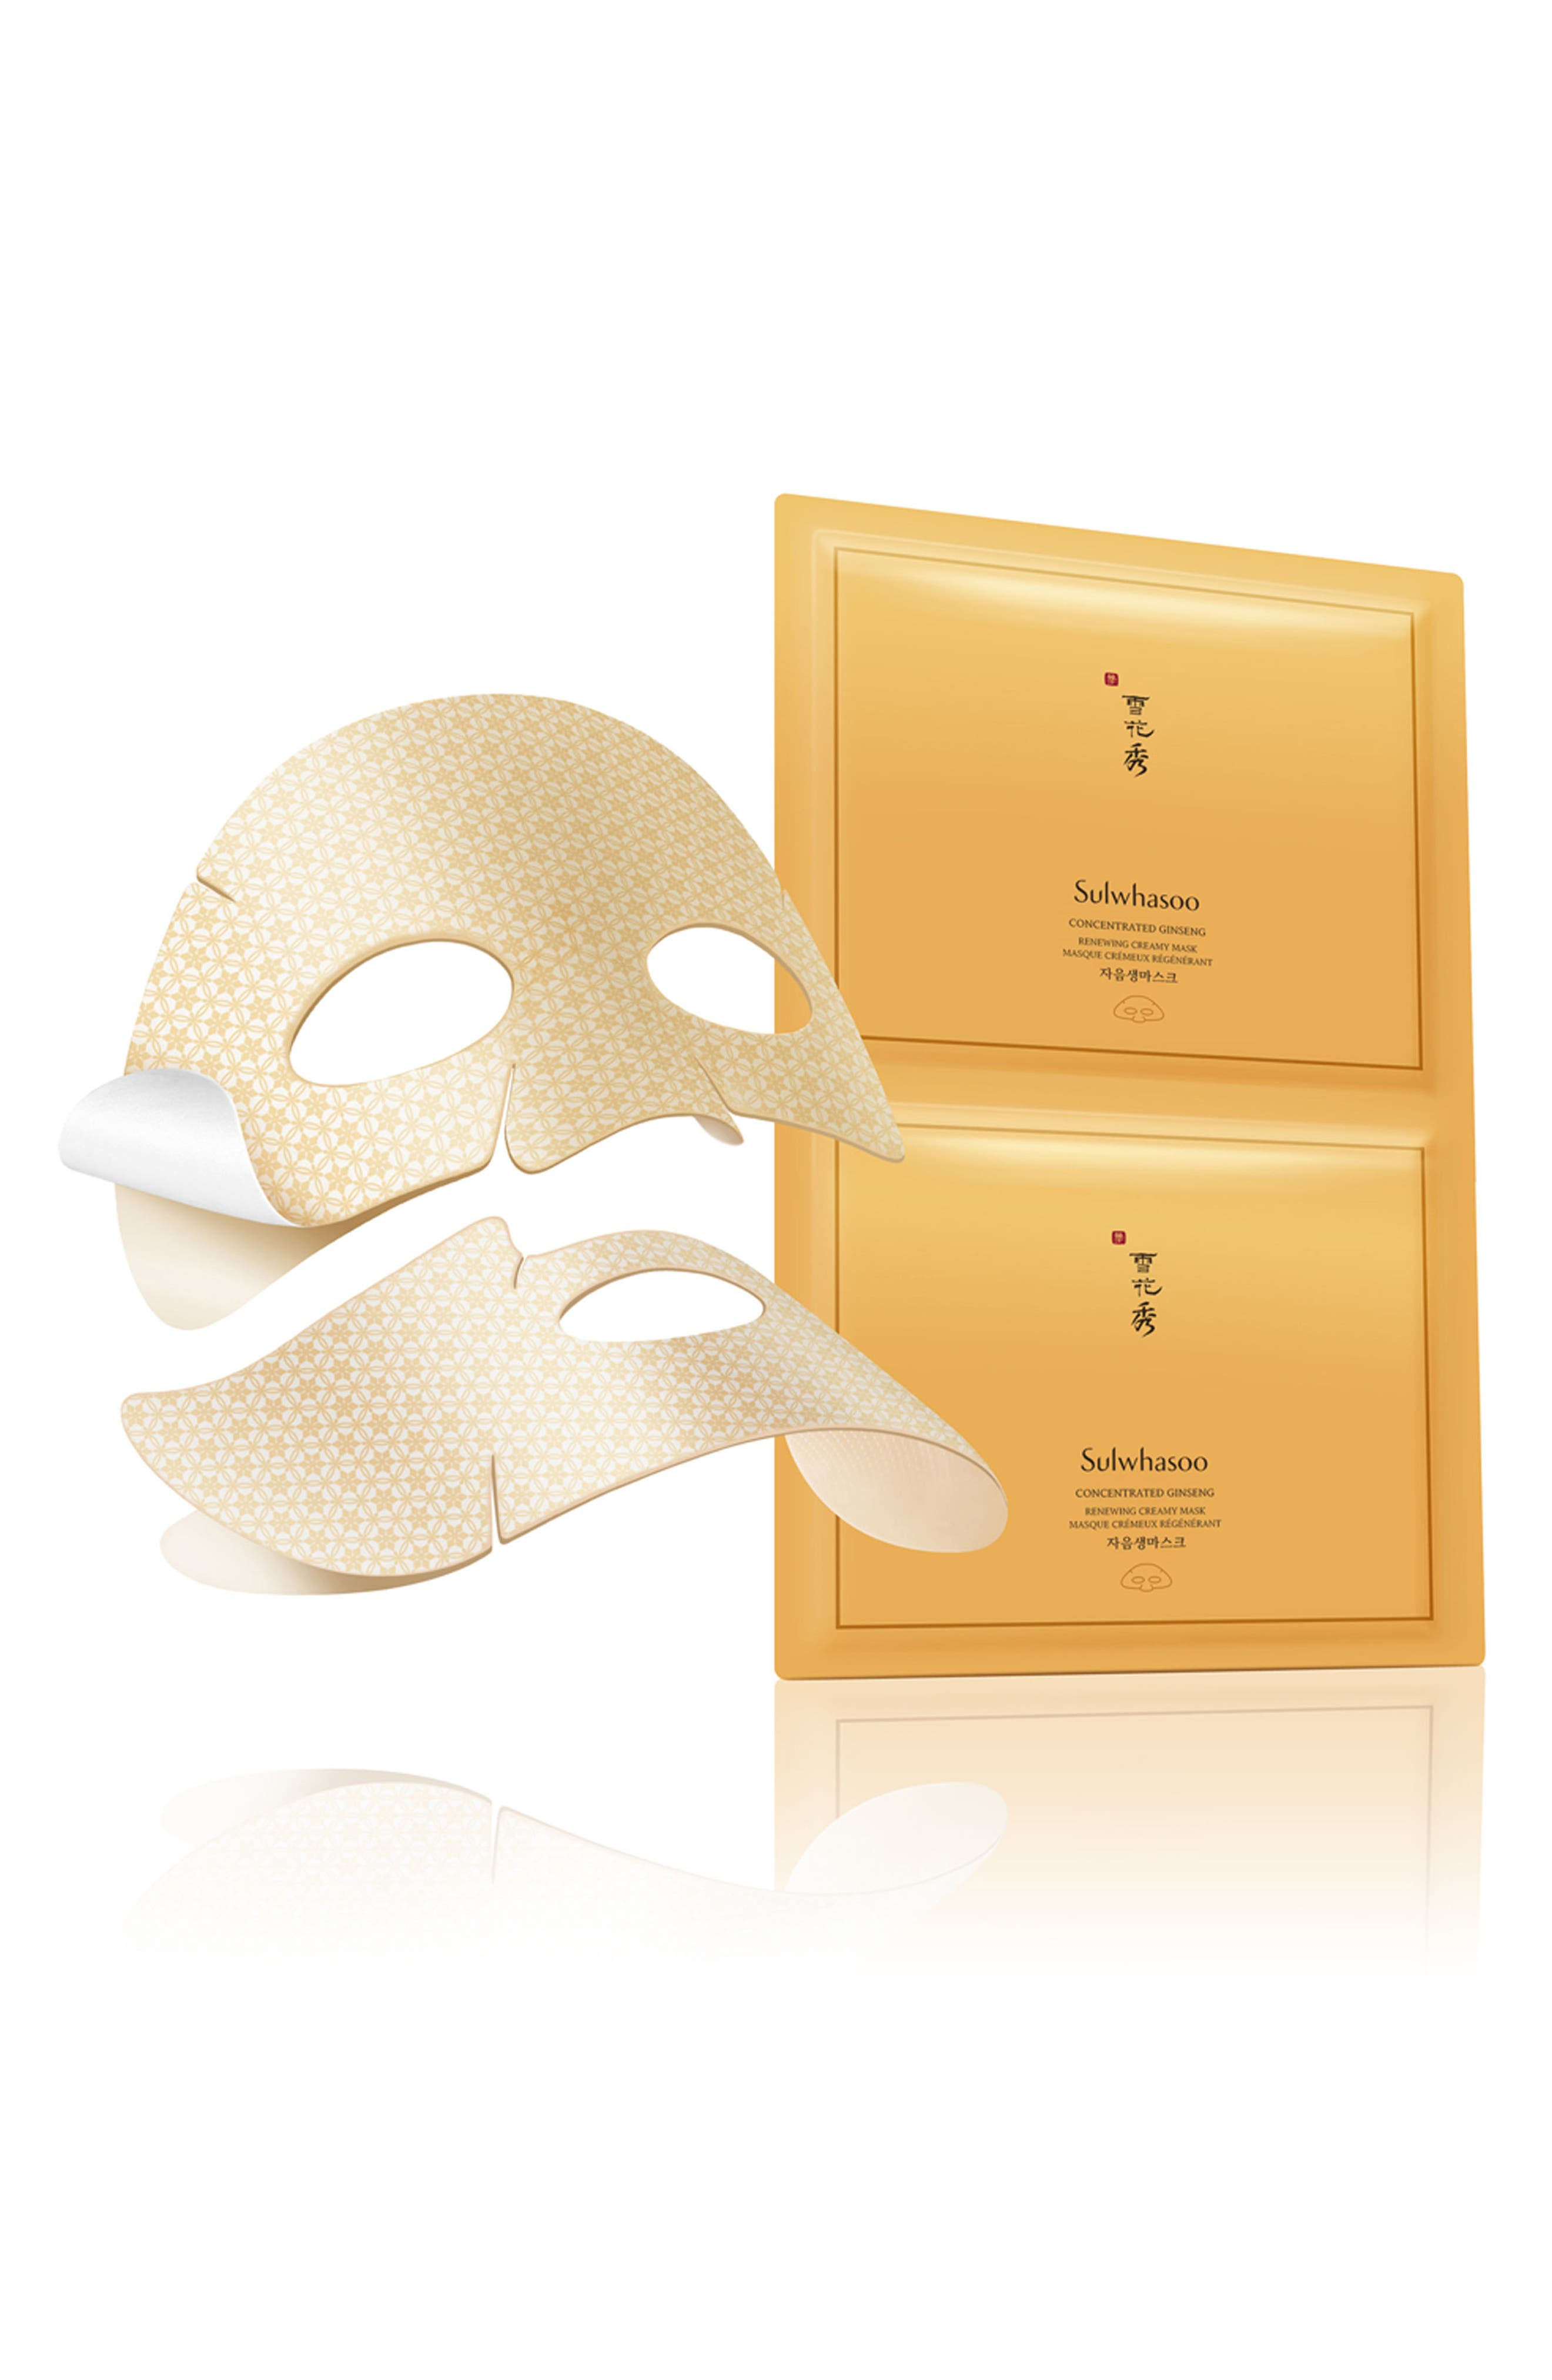 Main Image - Sulwhasoo Concentrated Ginseng Renewing Creamy Mask